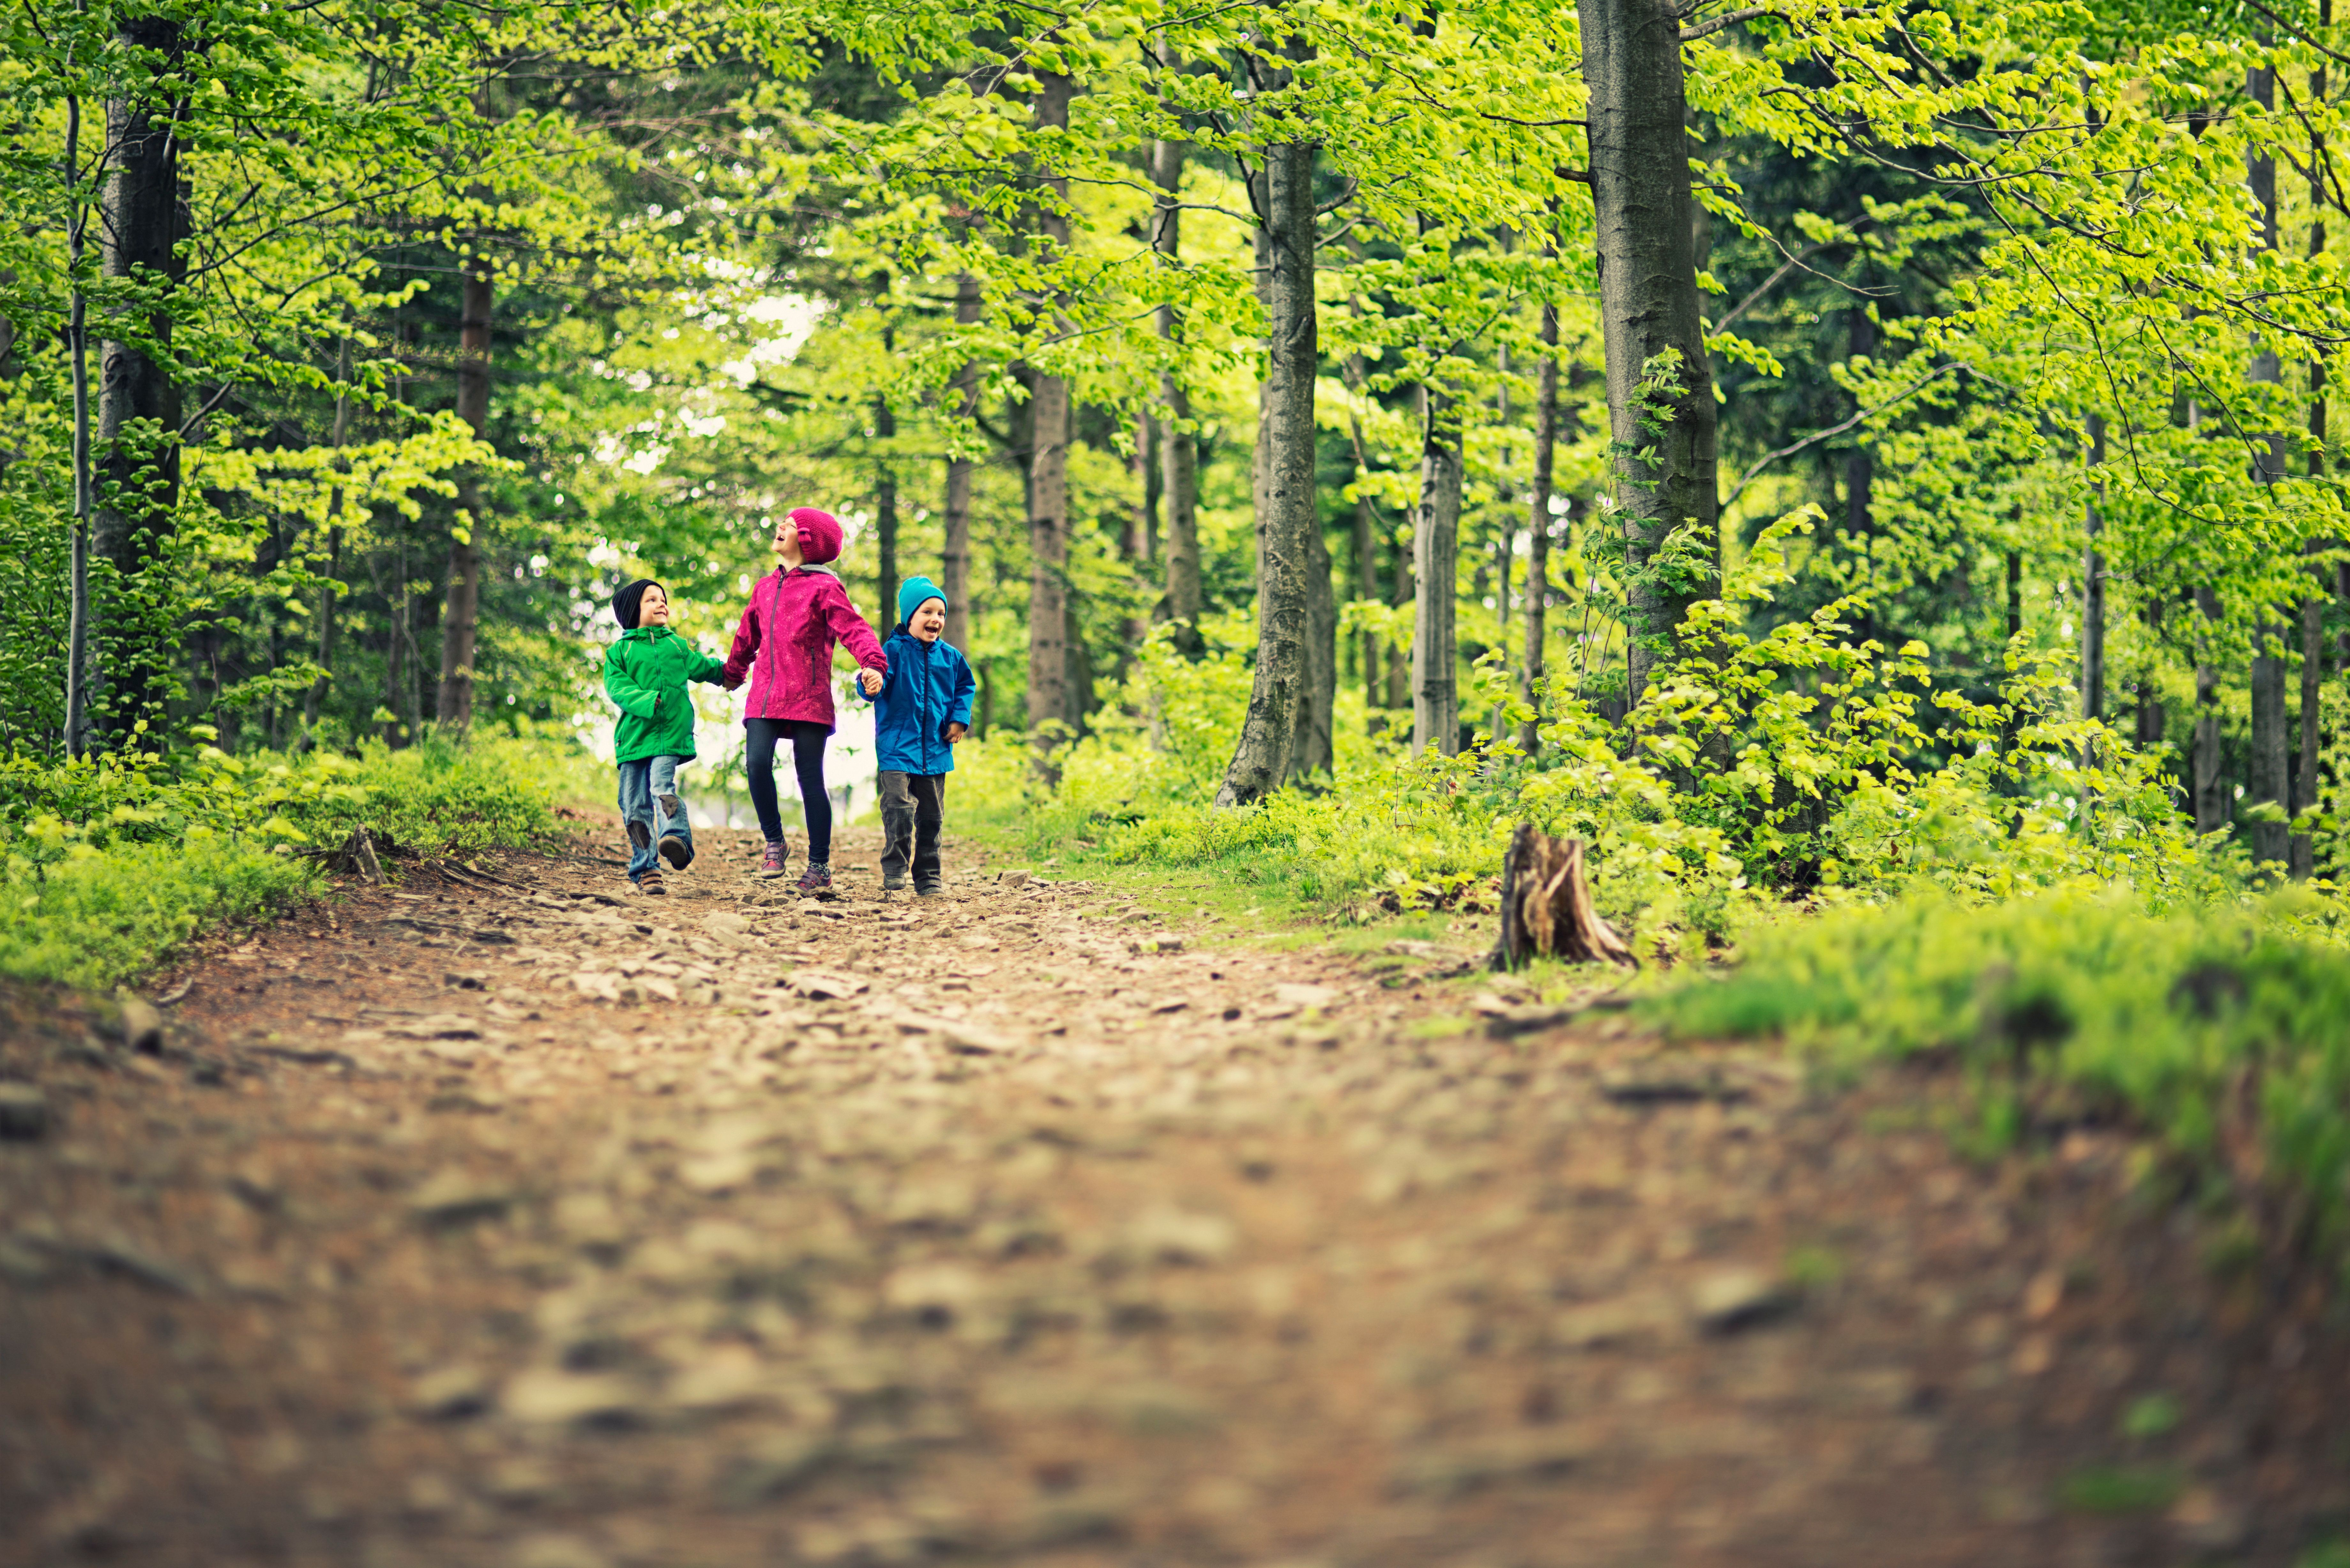 Three kids hiking through a spring forest, jumping and laughing. Kids wearing colorful jackets are holding hands and walking along dirt path surrounded by fresh green leaves.